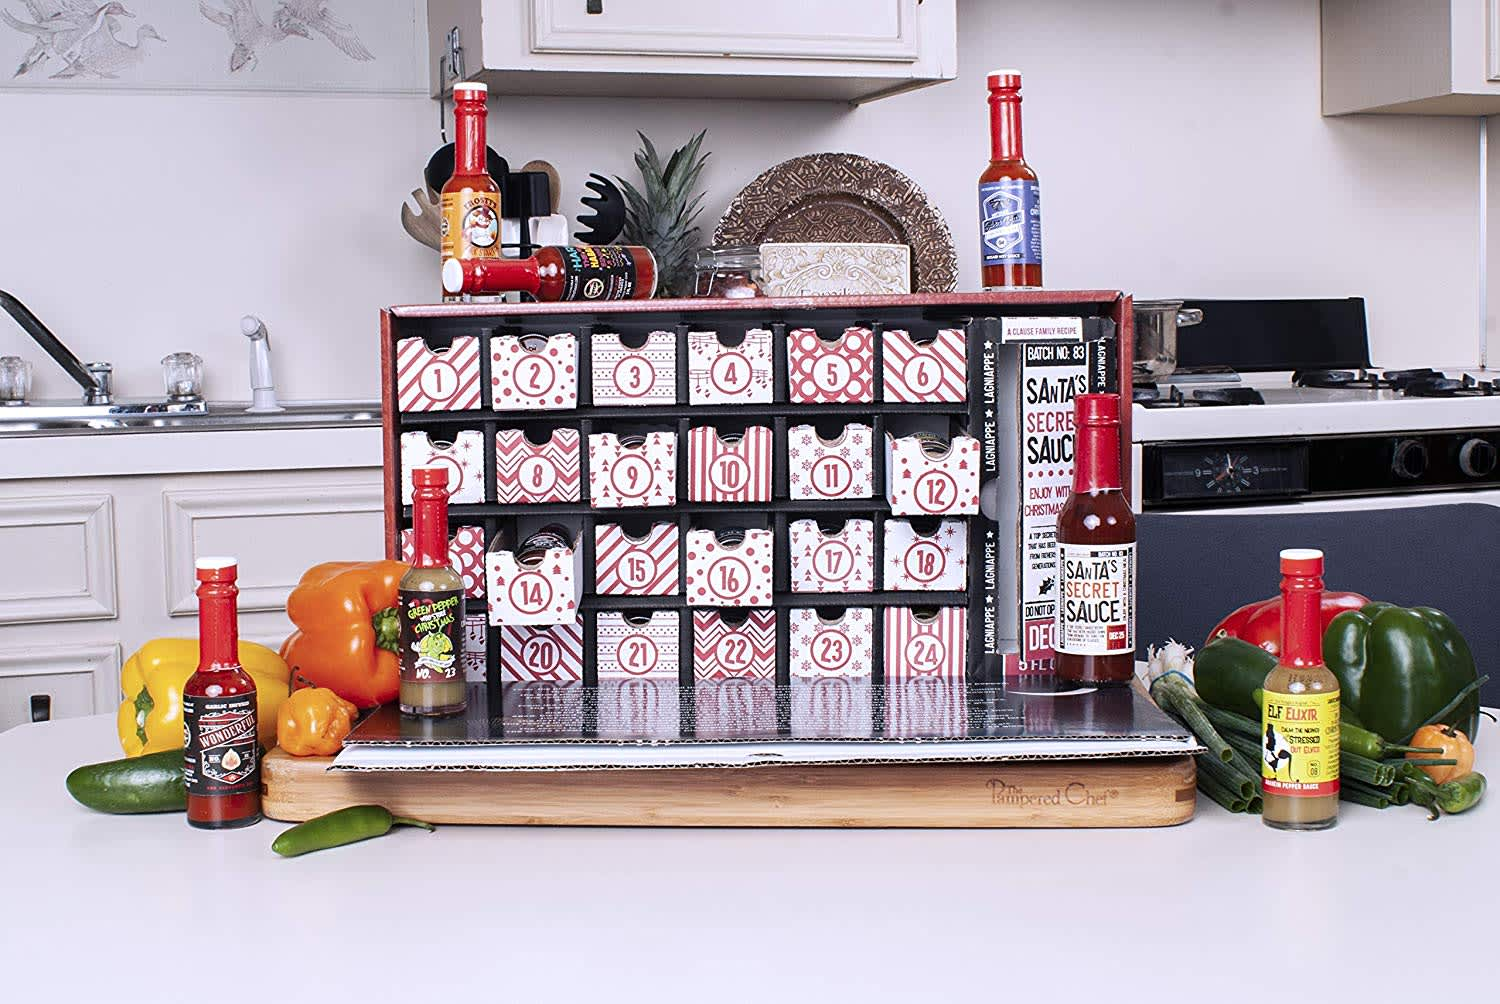 This Popular Hot Sauce Advent Calendar Is for Spice-Lovers Only